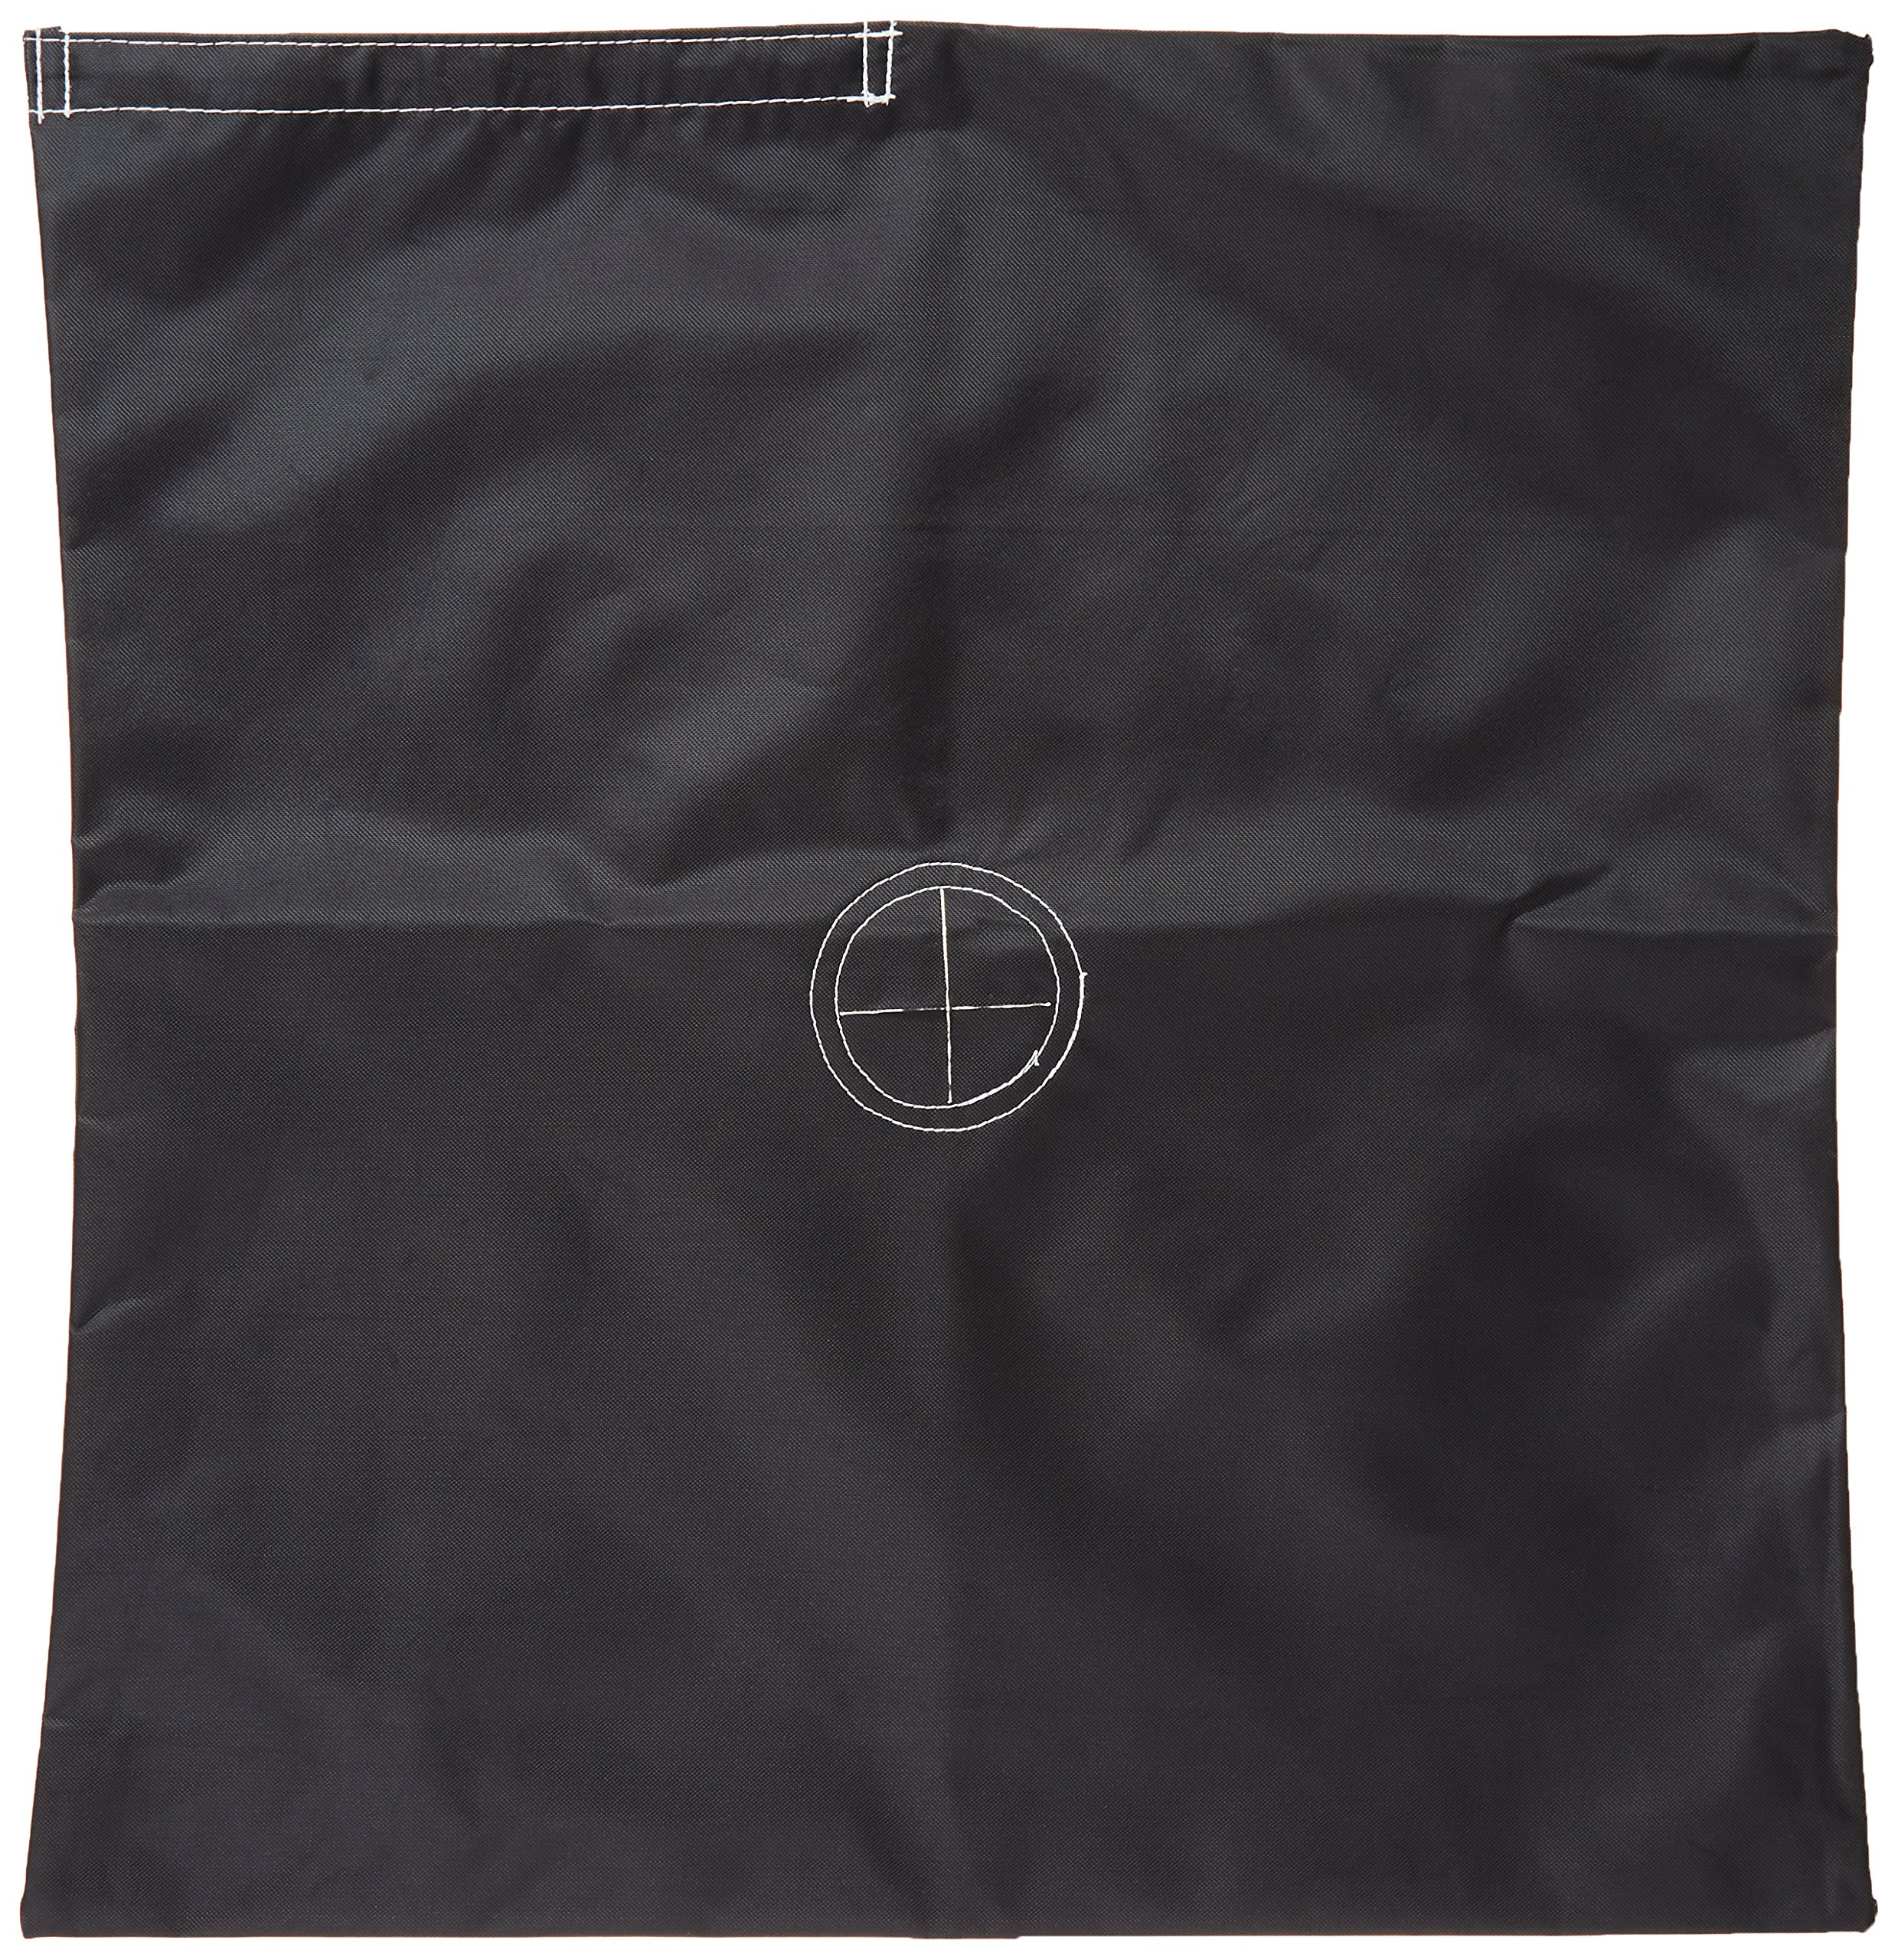 Flags Importer ASF-SSB Sand Bag for Flag Poles